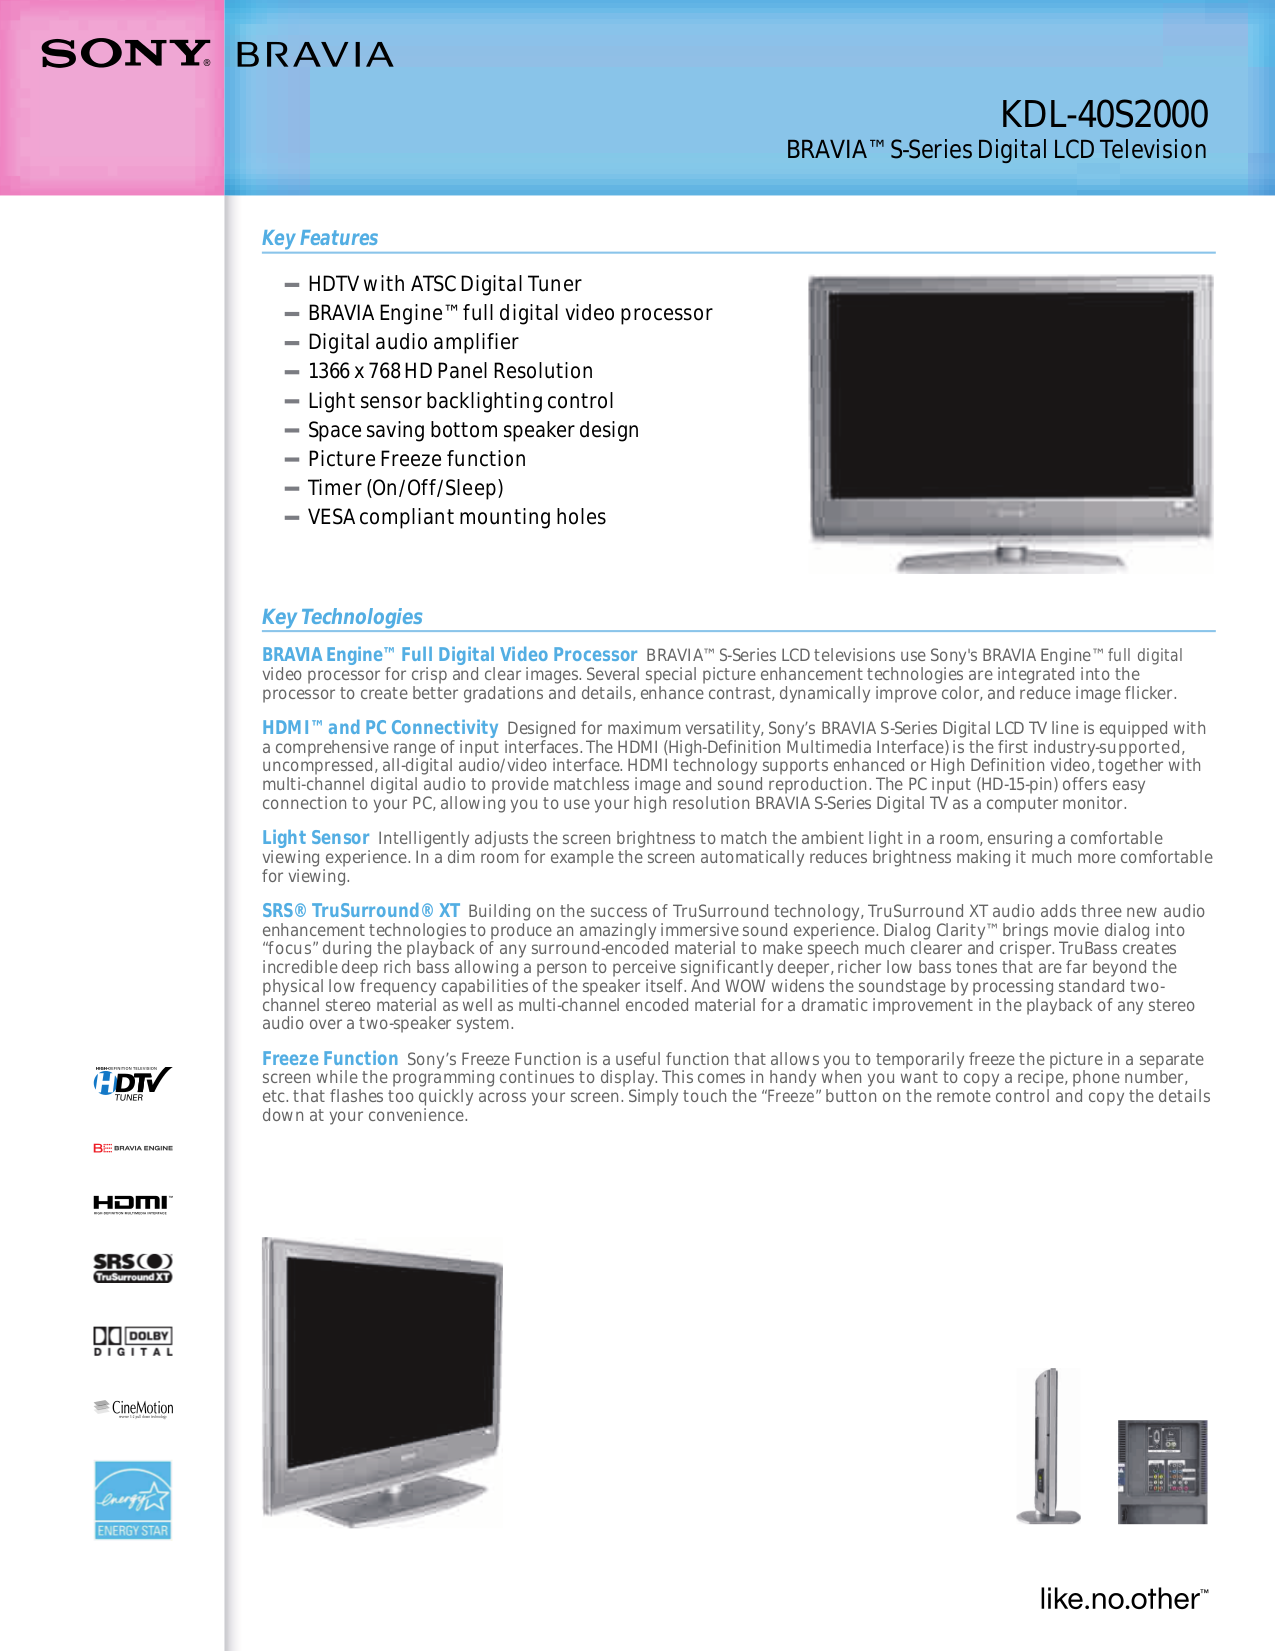 Download free pdf for Sony BRAVIA KDL-40S2000 TV manual